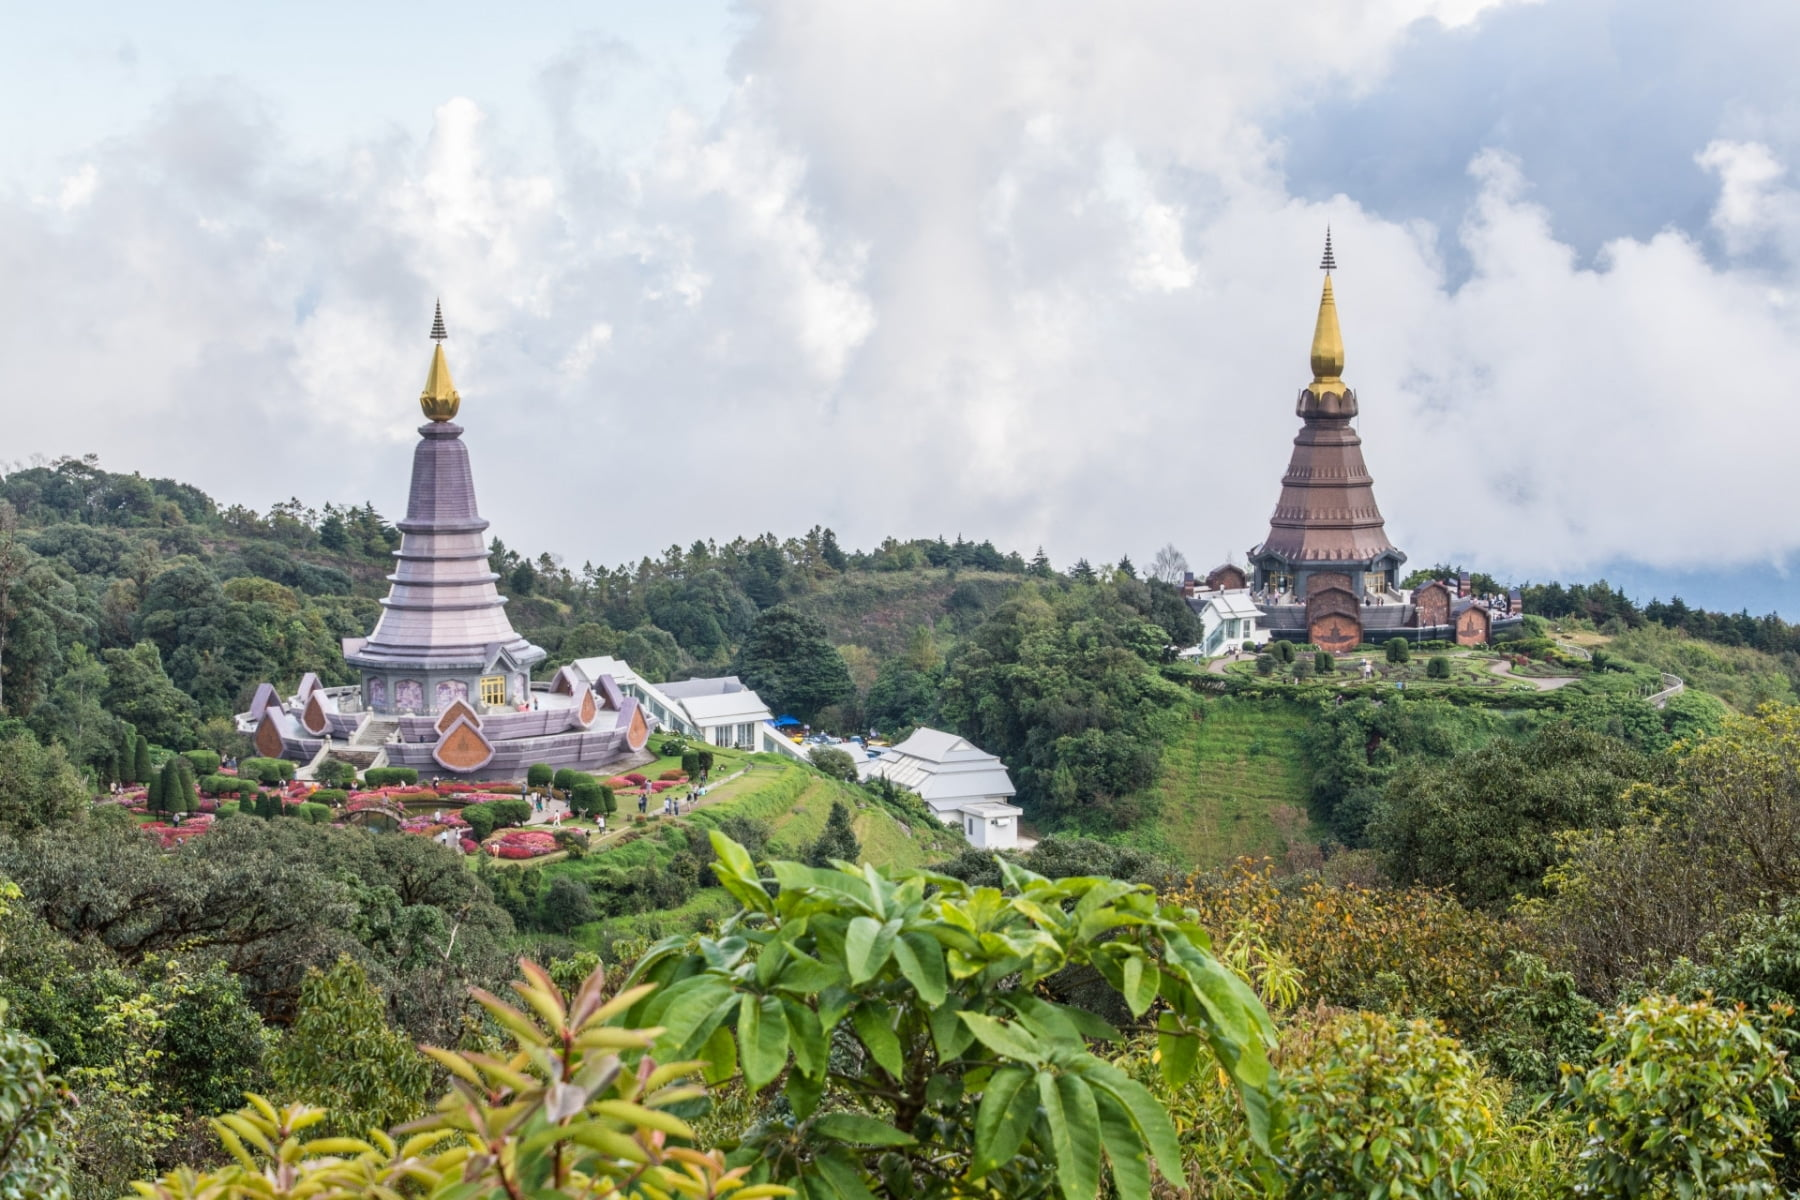 cover doi inthanon - chiang mai province - thailande